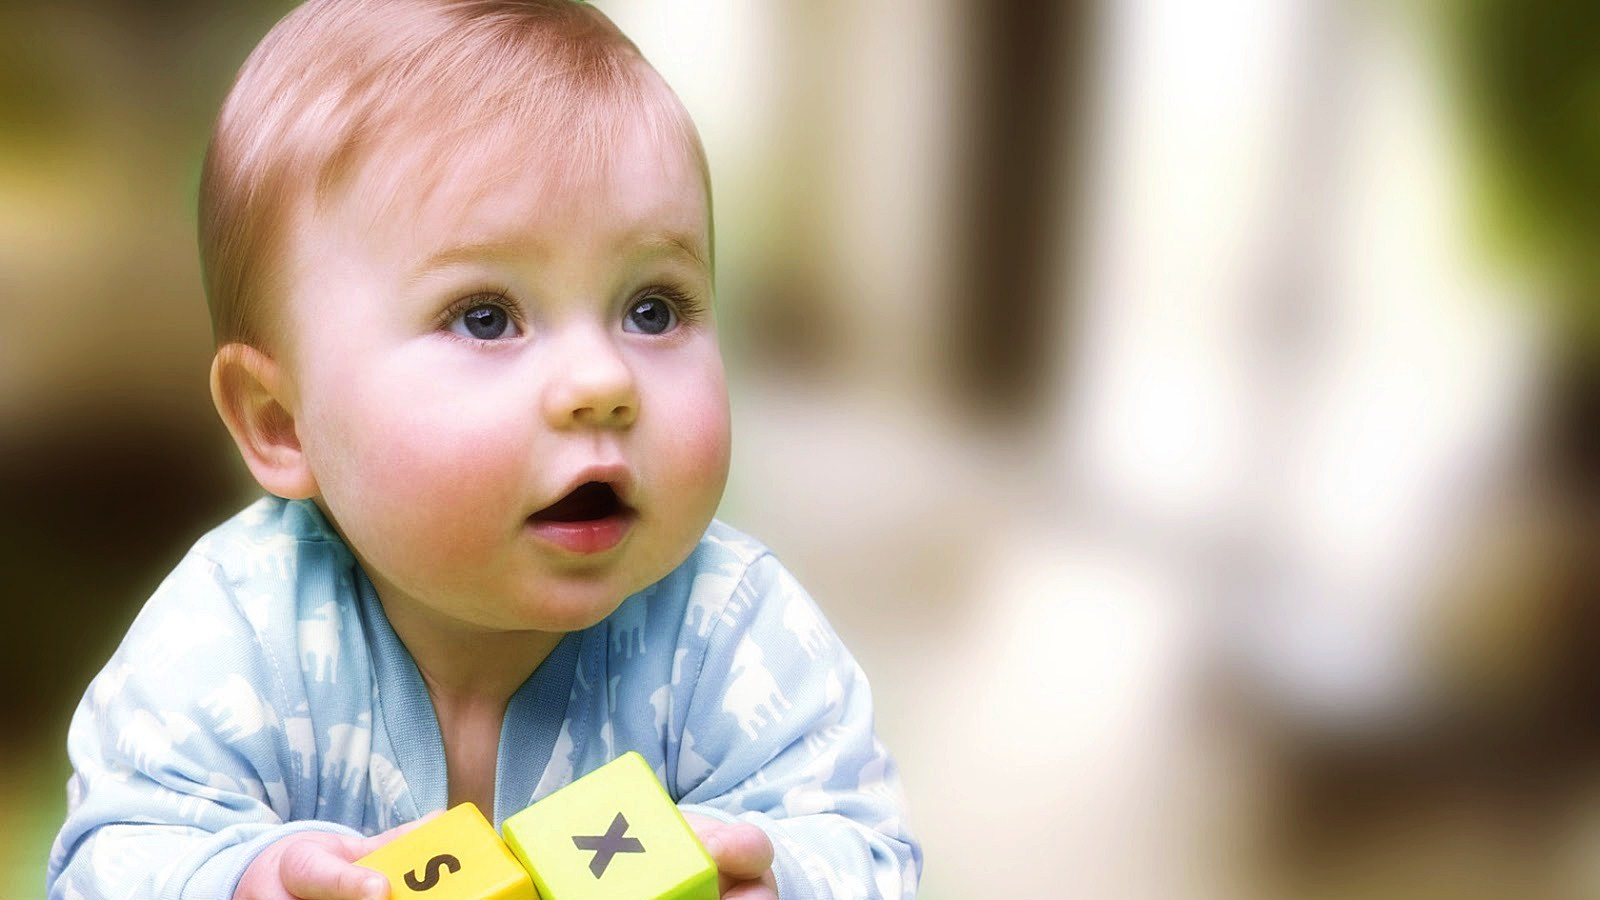 Collection of Baby Boy Pics Wallpaper on HDWallpapers